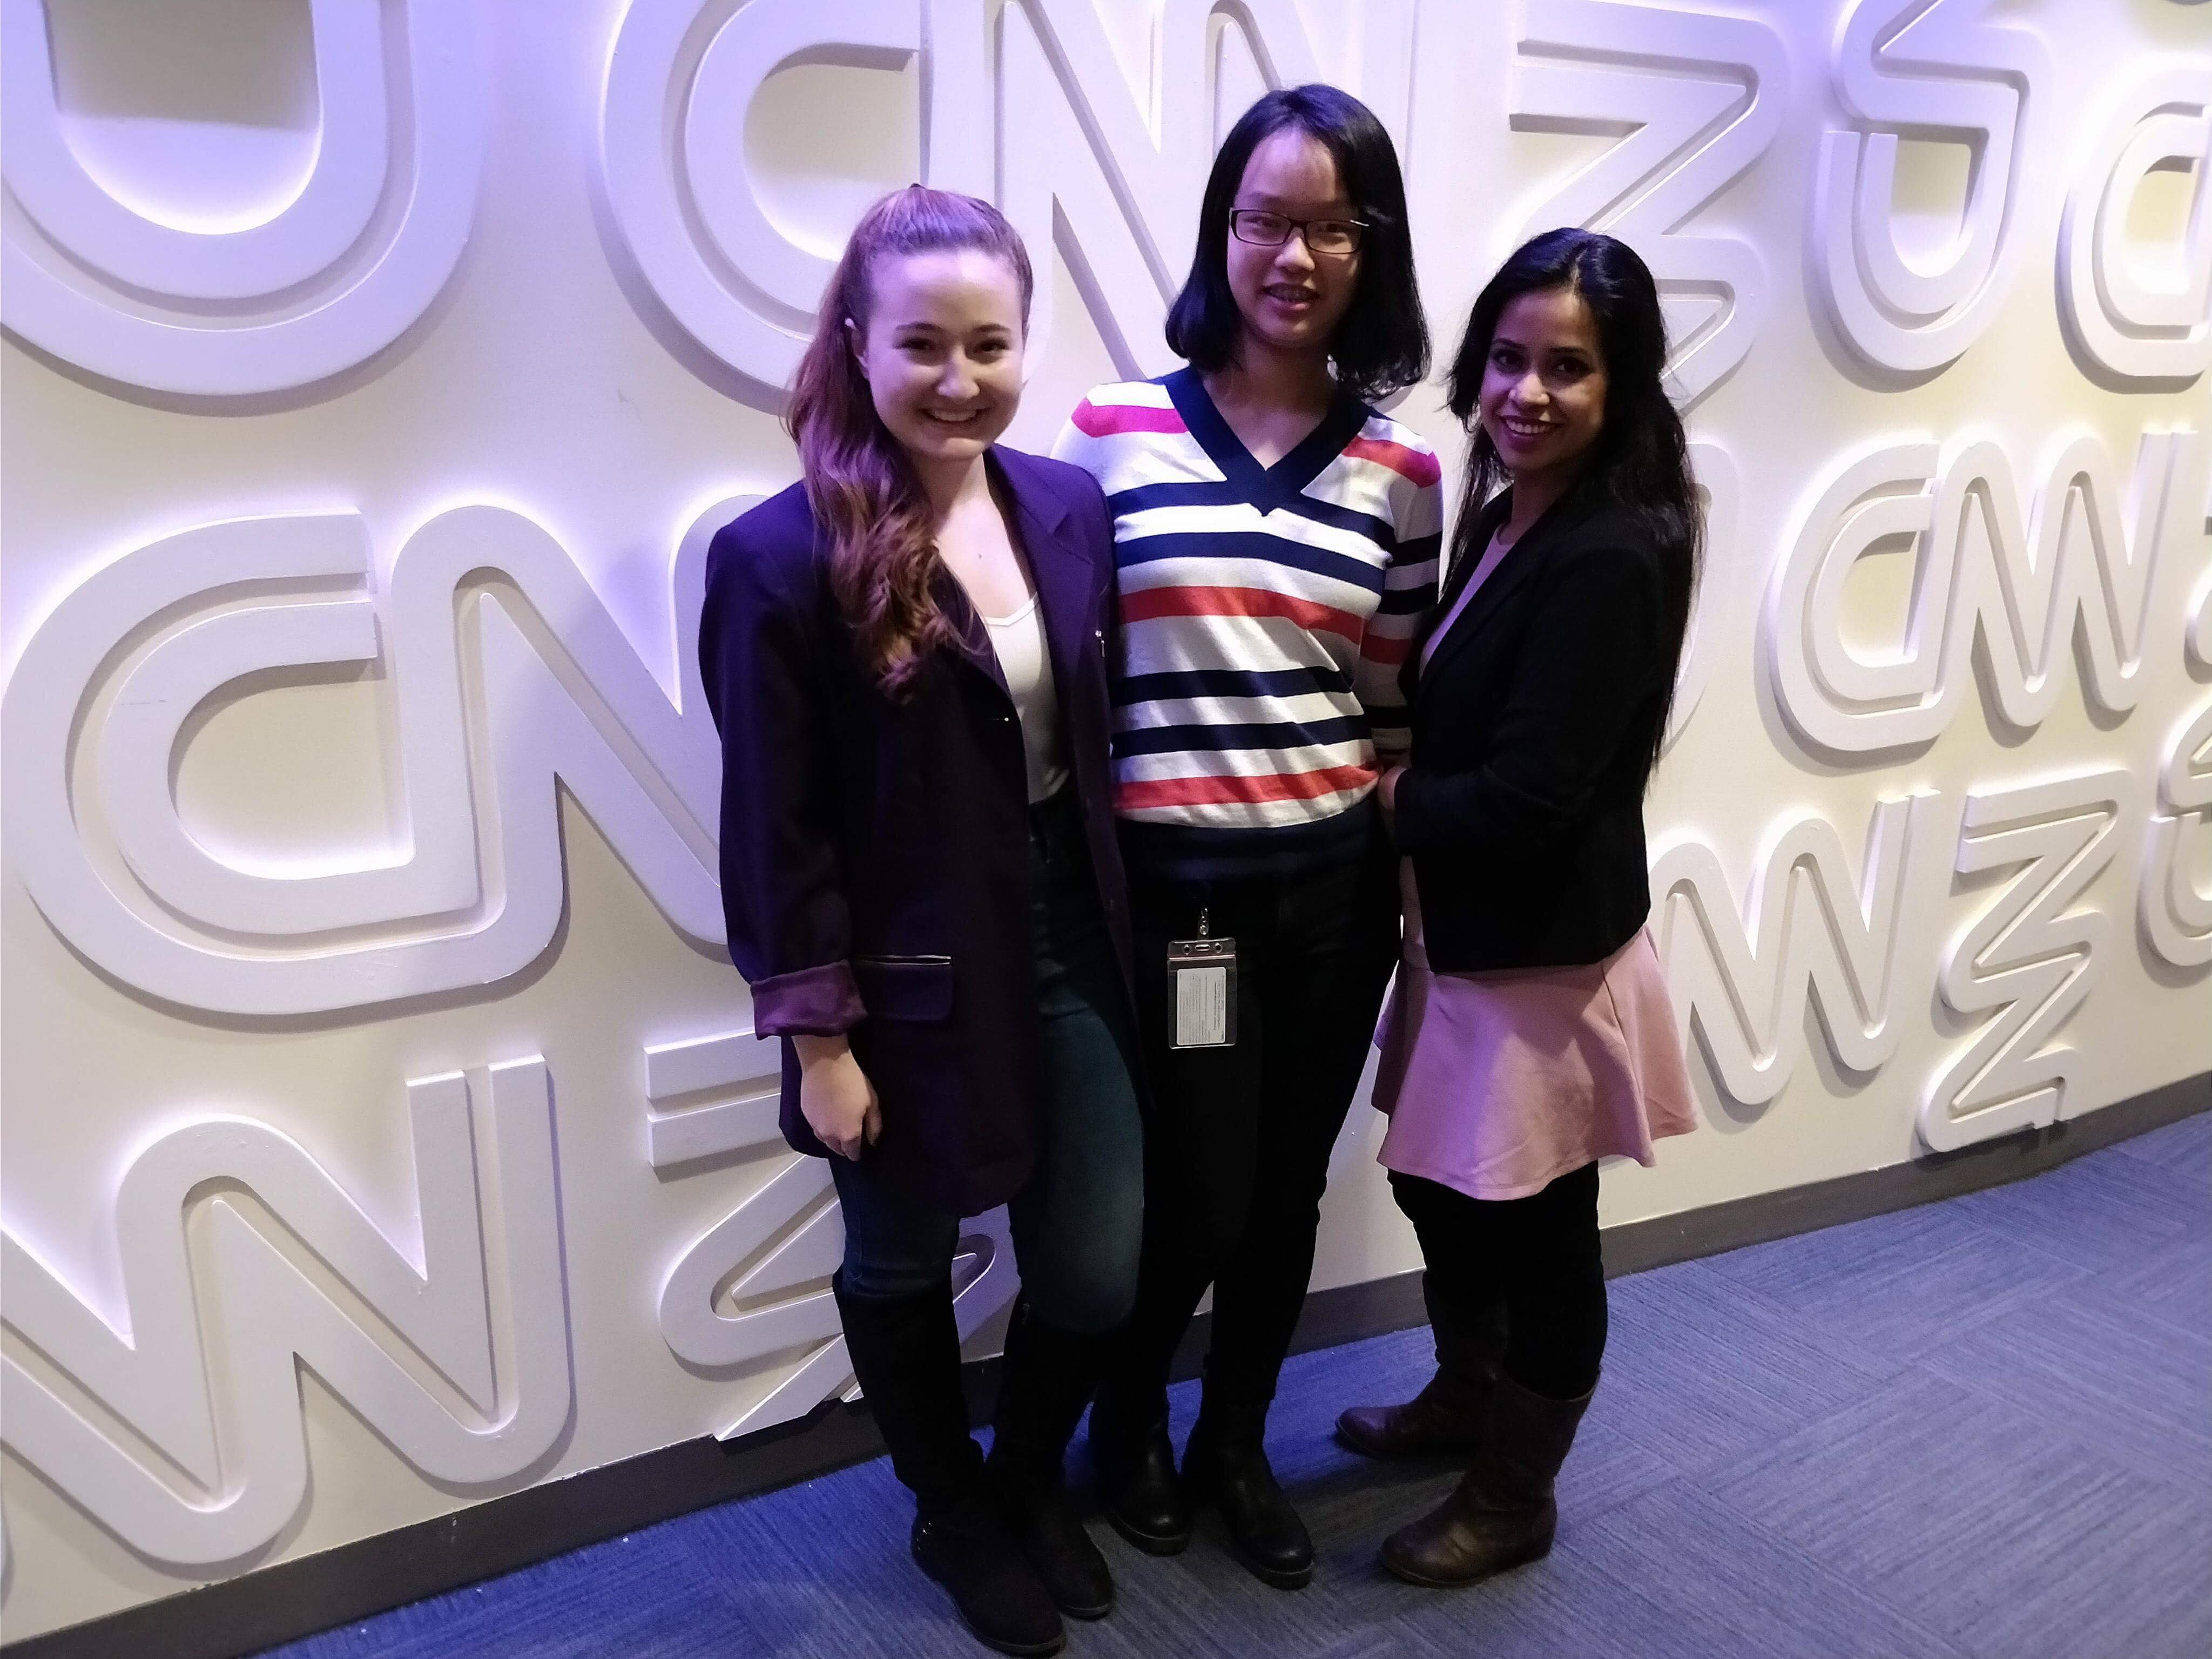 left to right: Annmarie Gajdos, Jenny Chen, Sabina Akter.